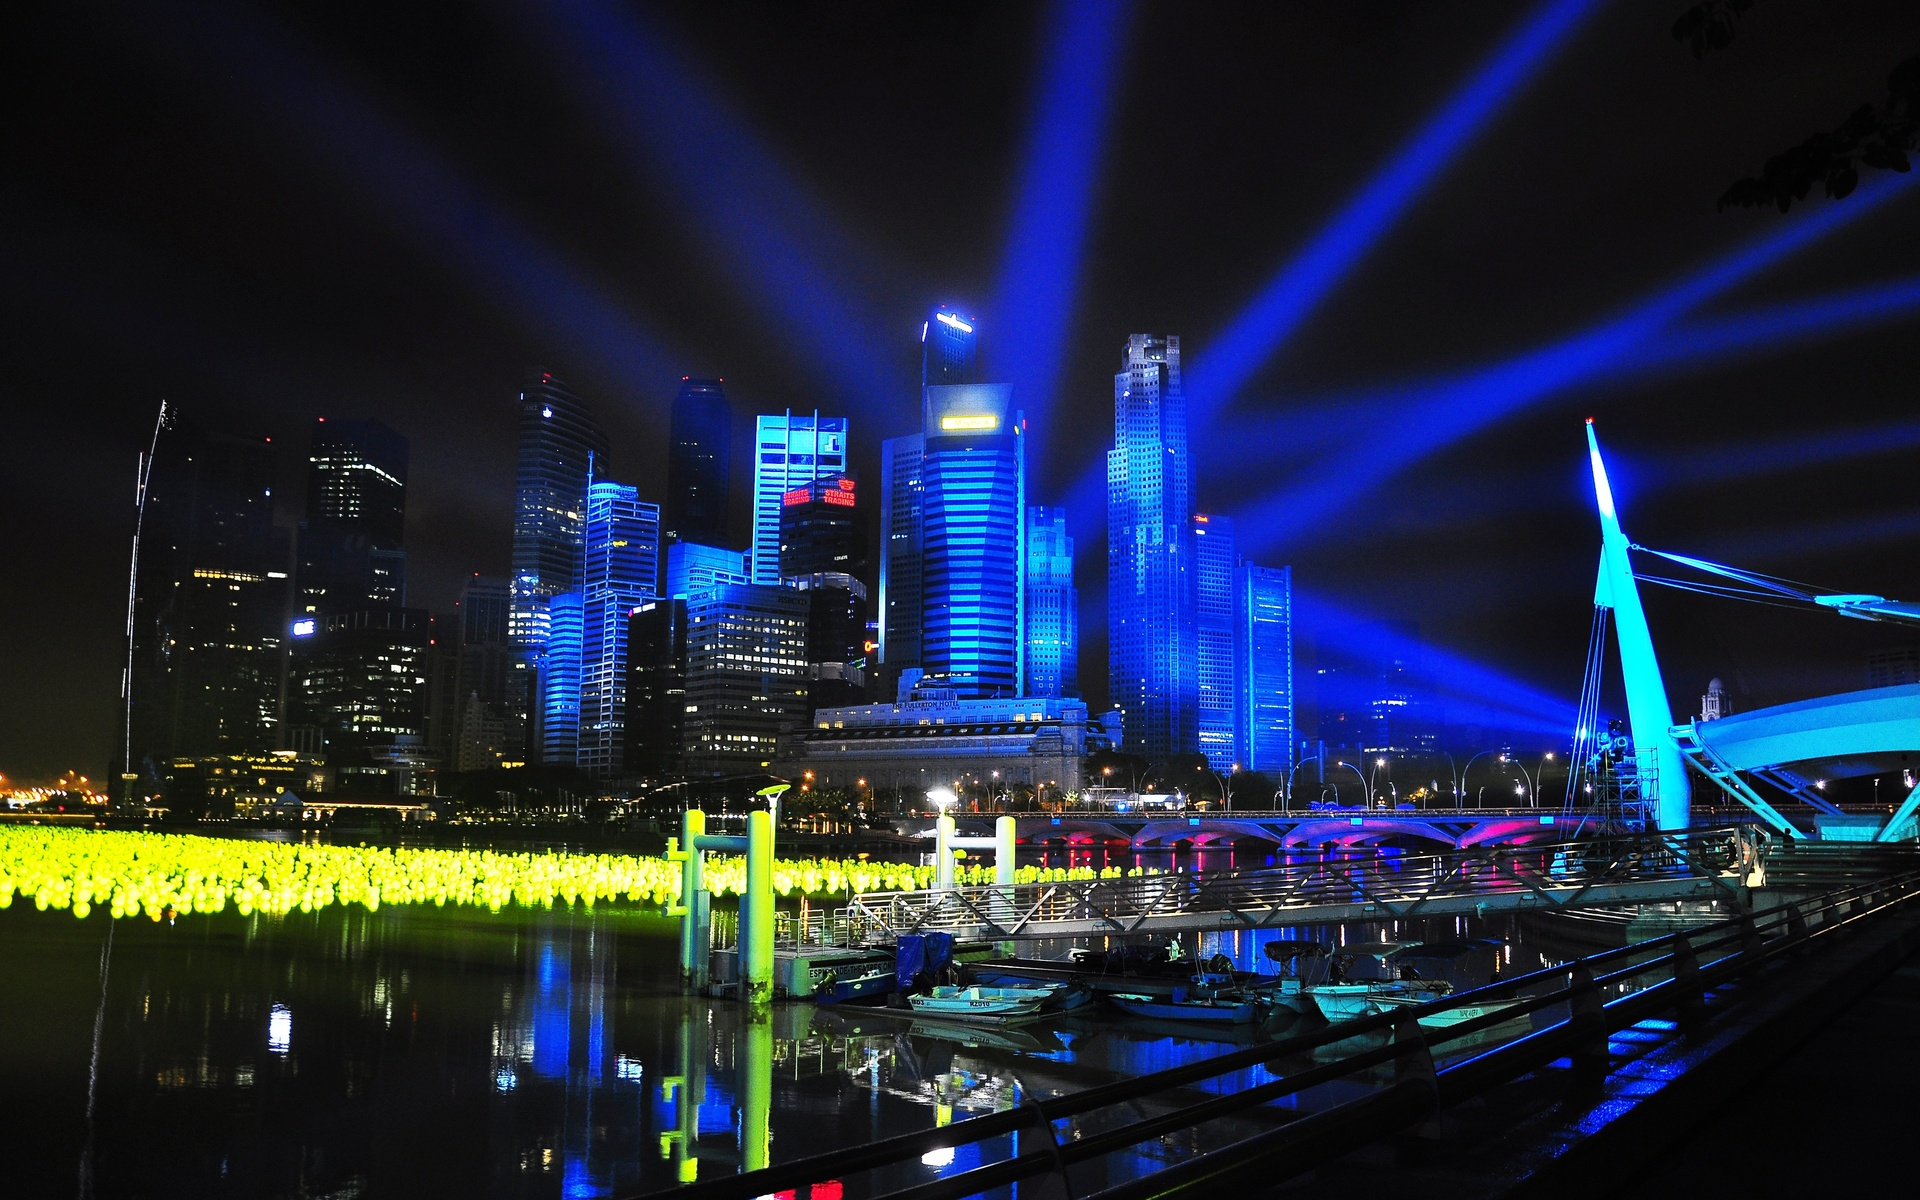 singapore city night lights wallpaper background 1920x1200